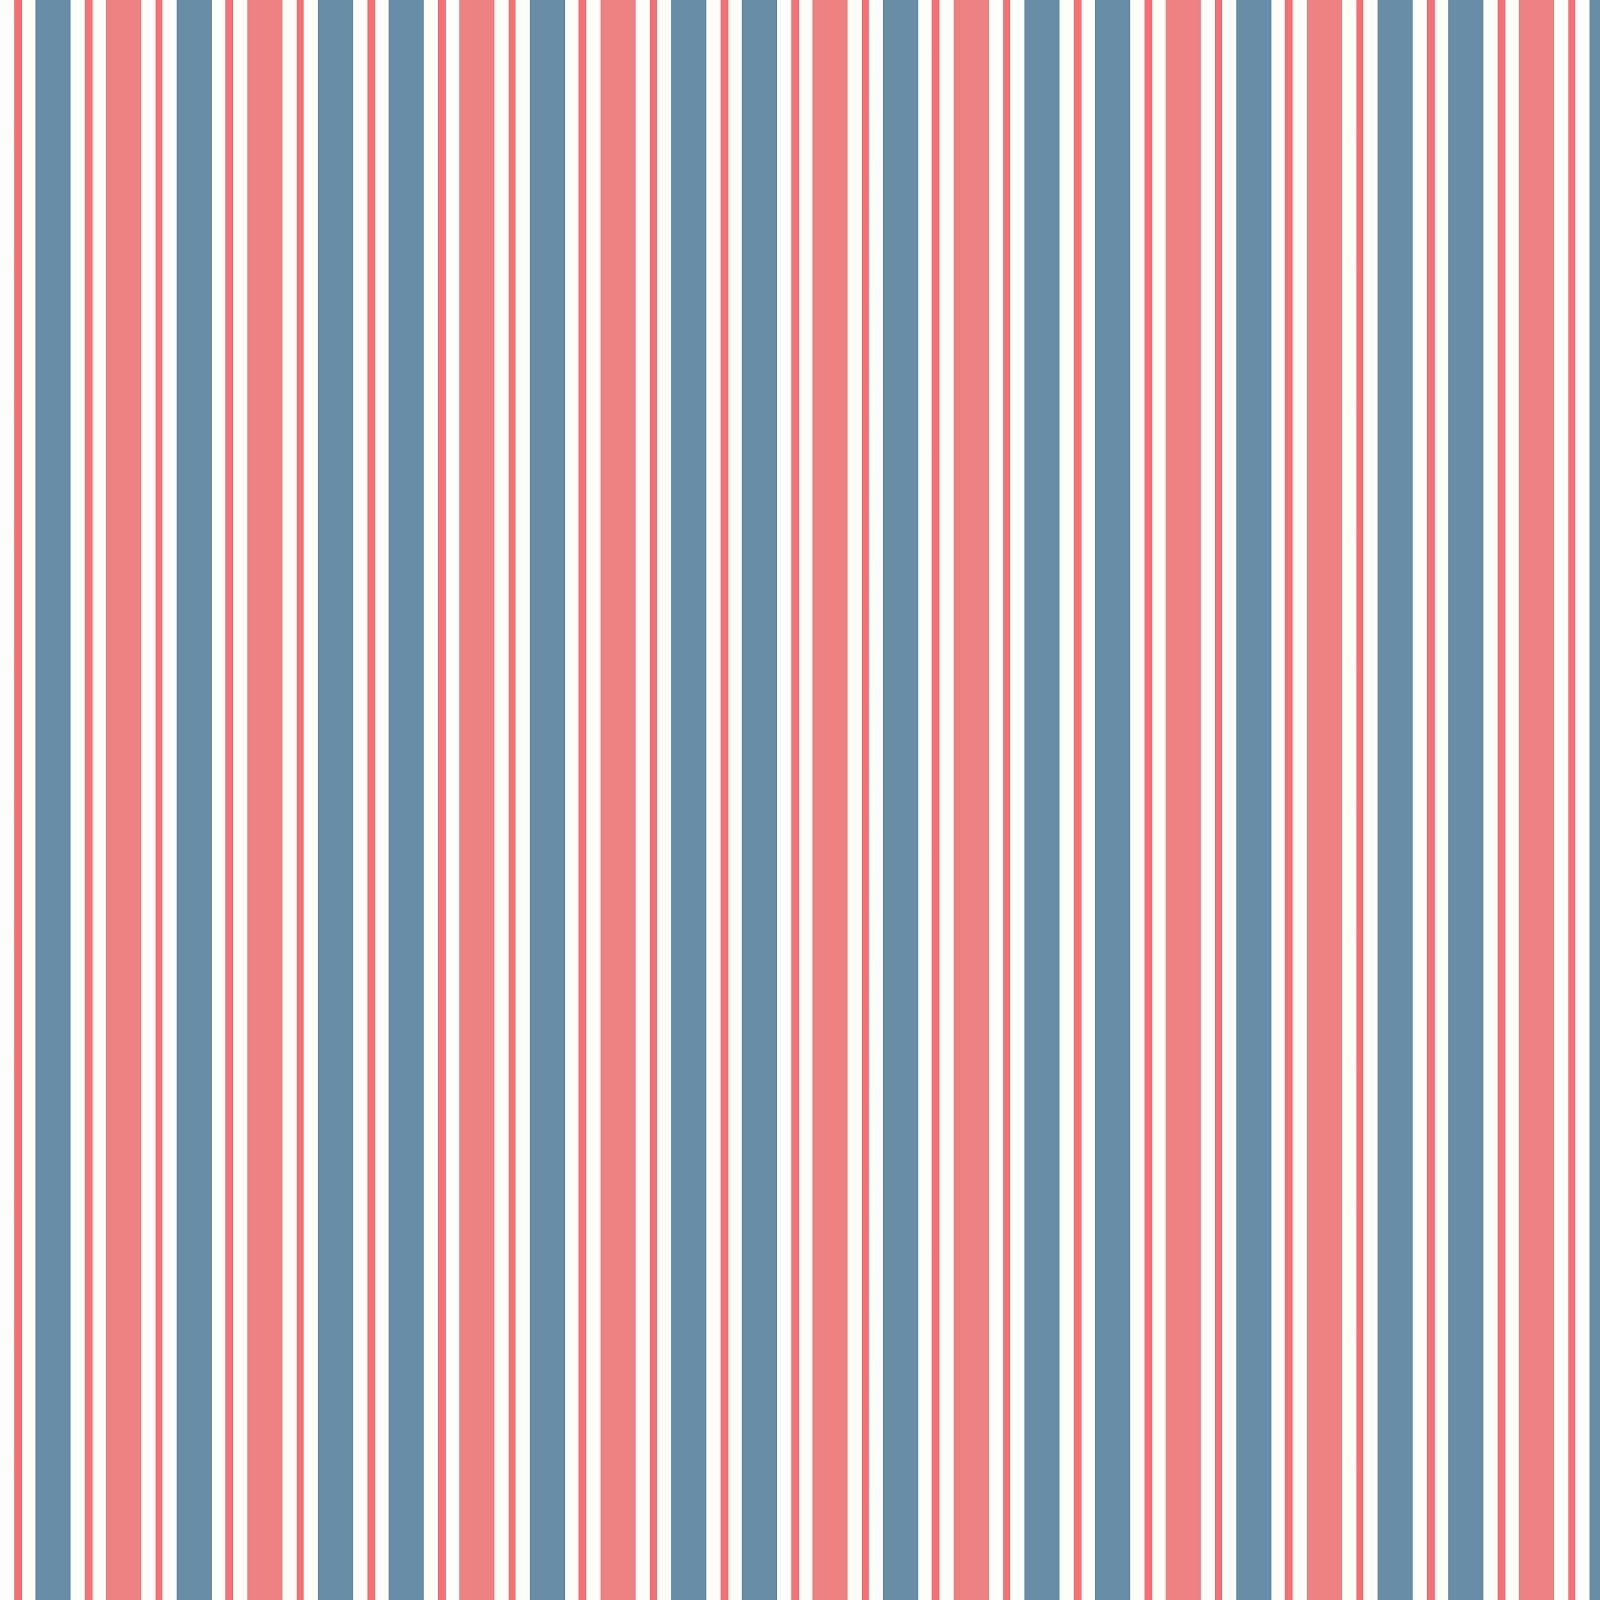 Scrapbook paper download - Red White And Blue Stripes Free Digital Scrapbook Paper Download